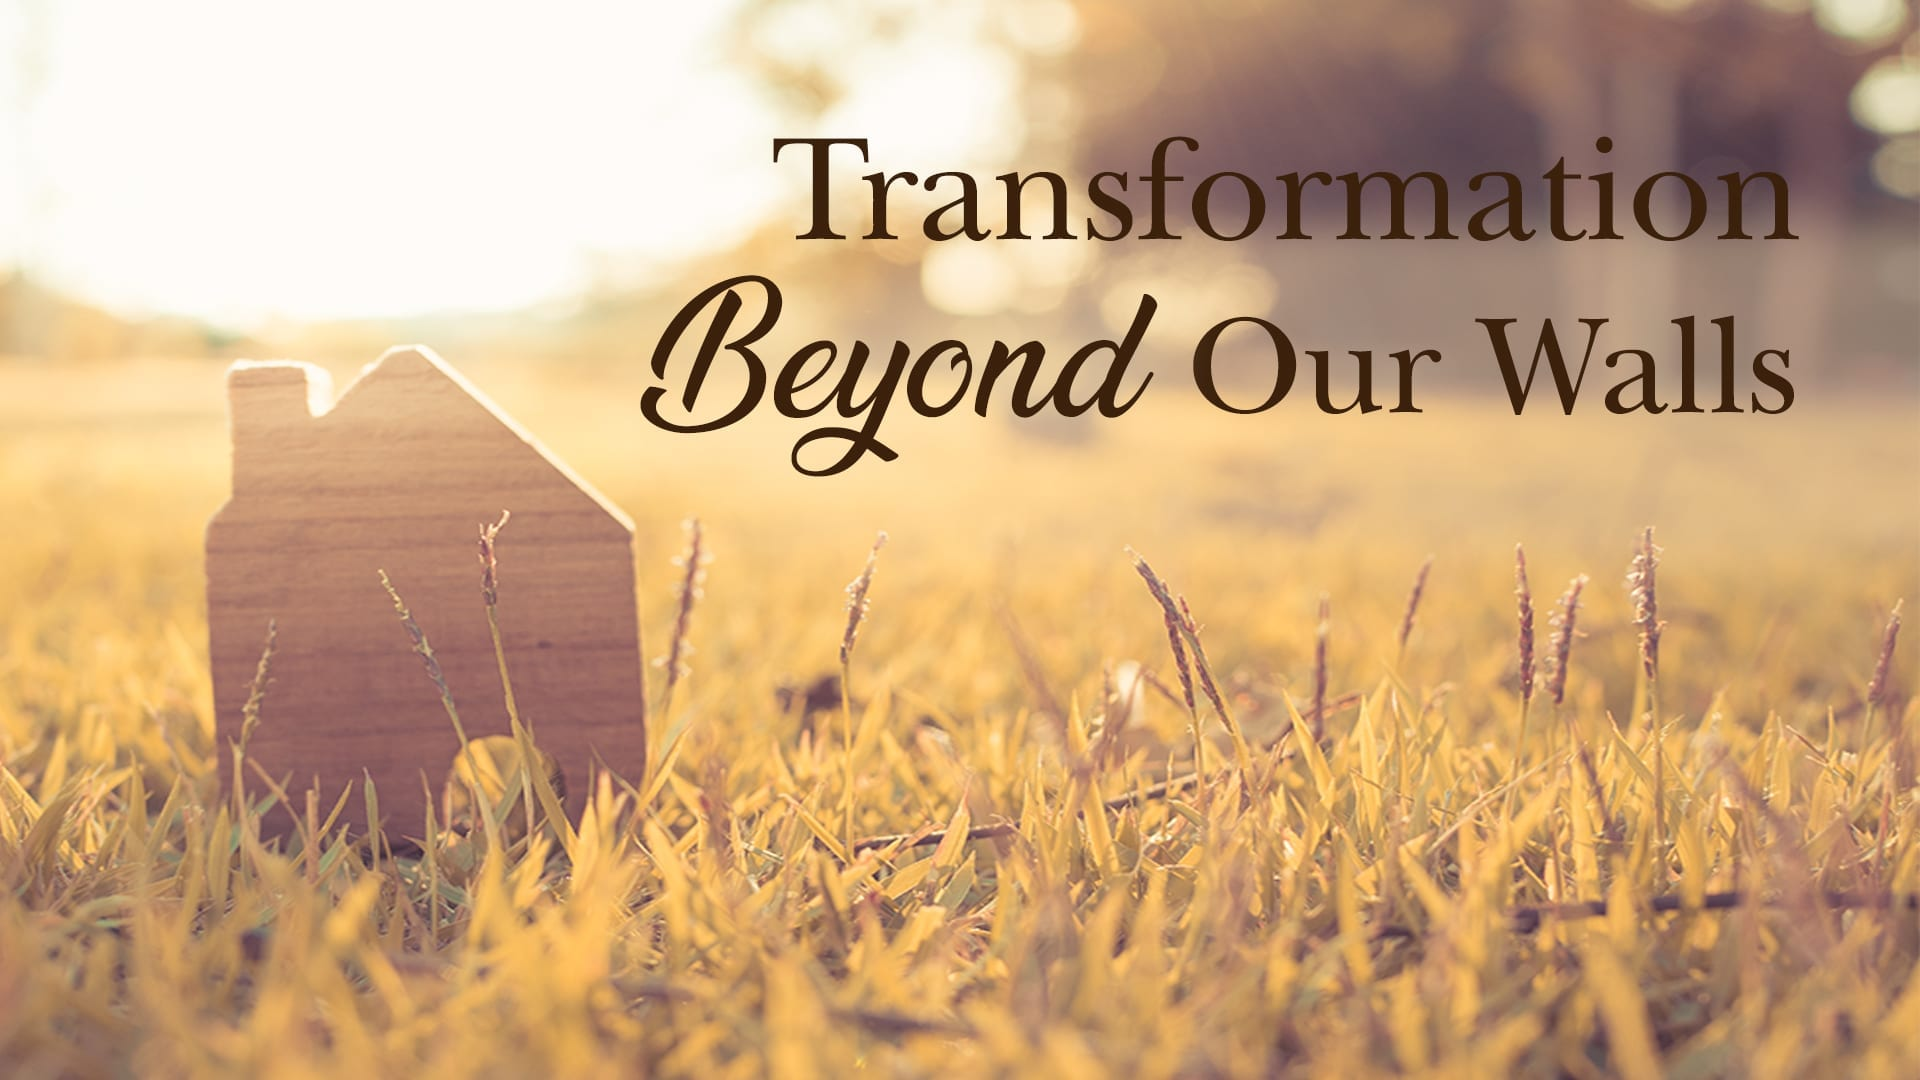 Transformation Beyond Our Walls